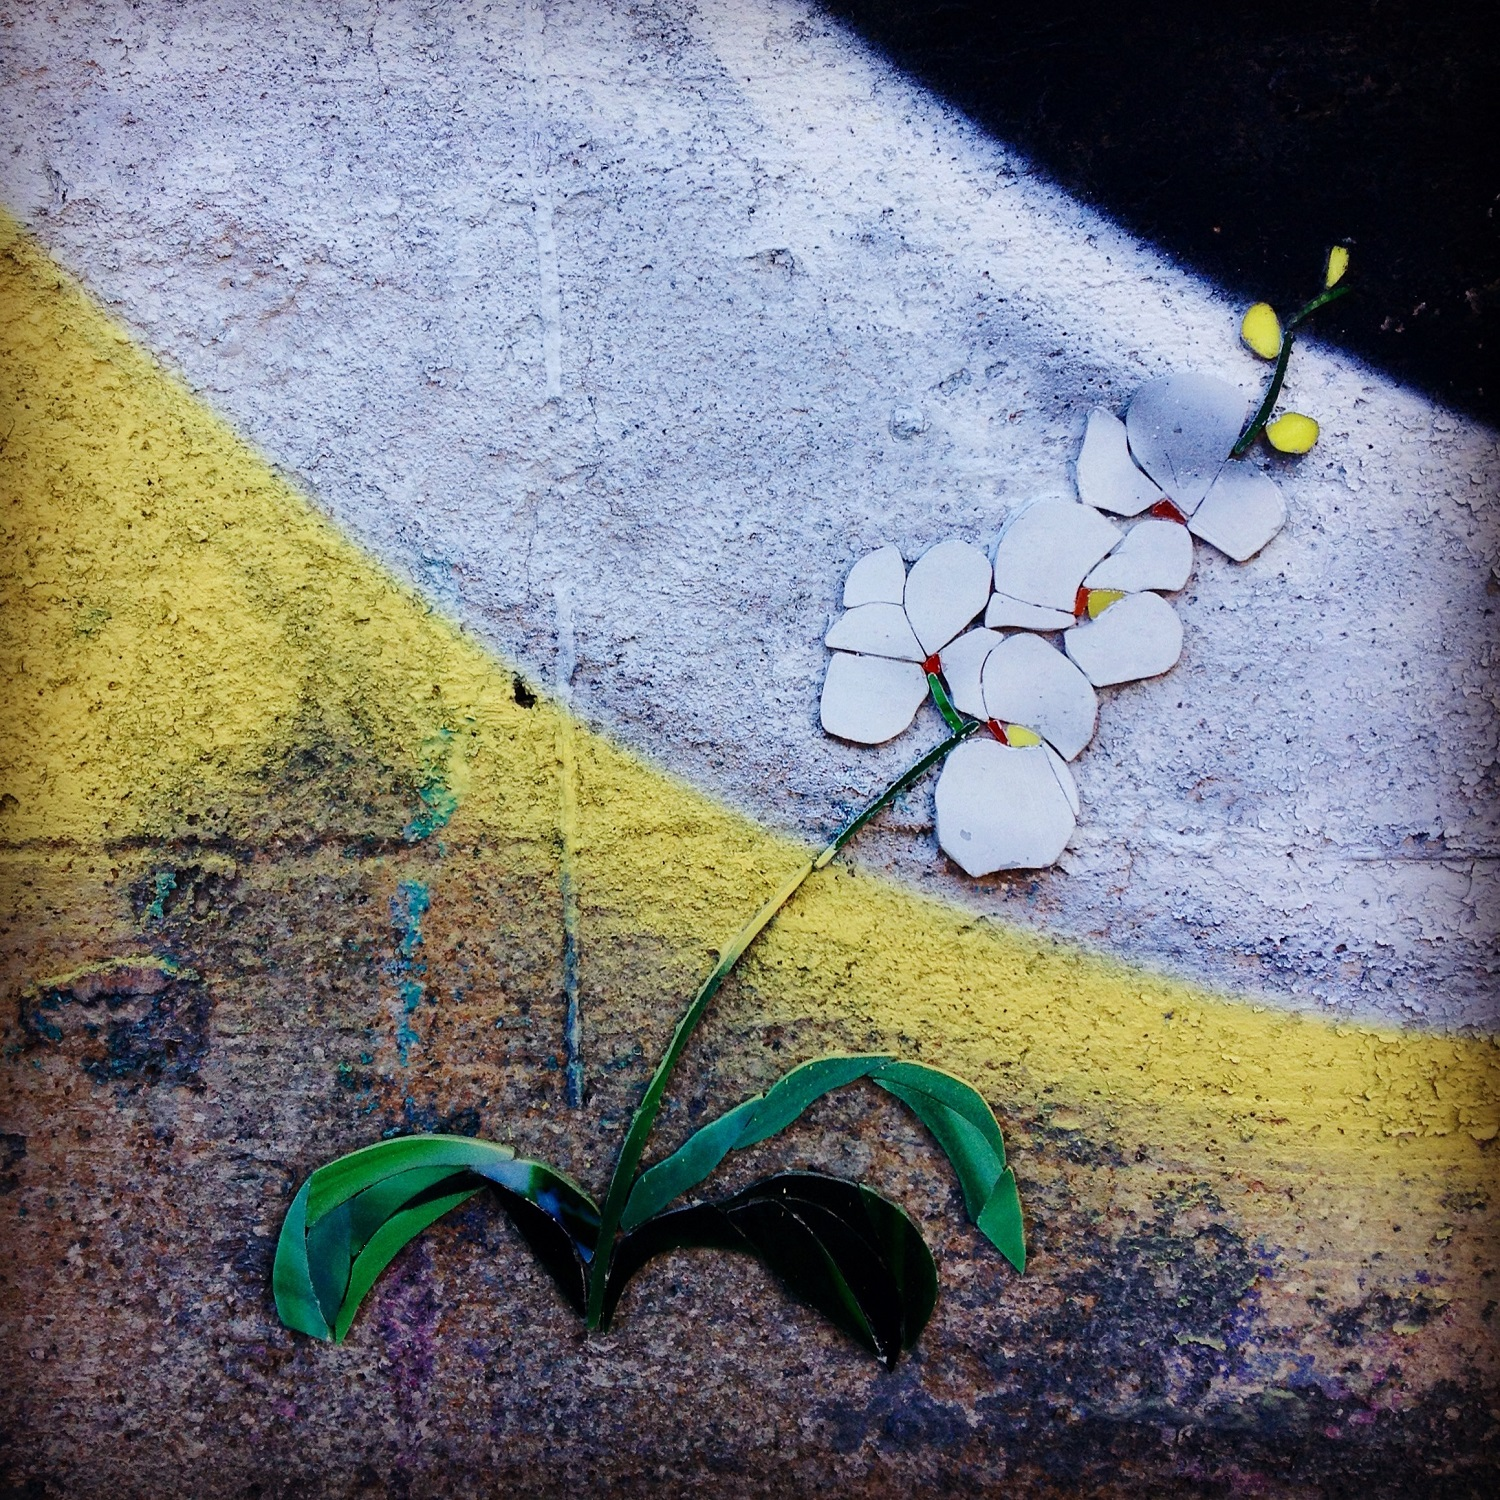 wing-glass-street-art-orchid-nyc.jpg